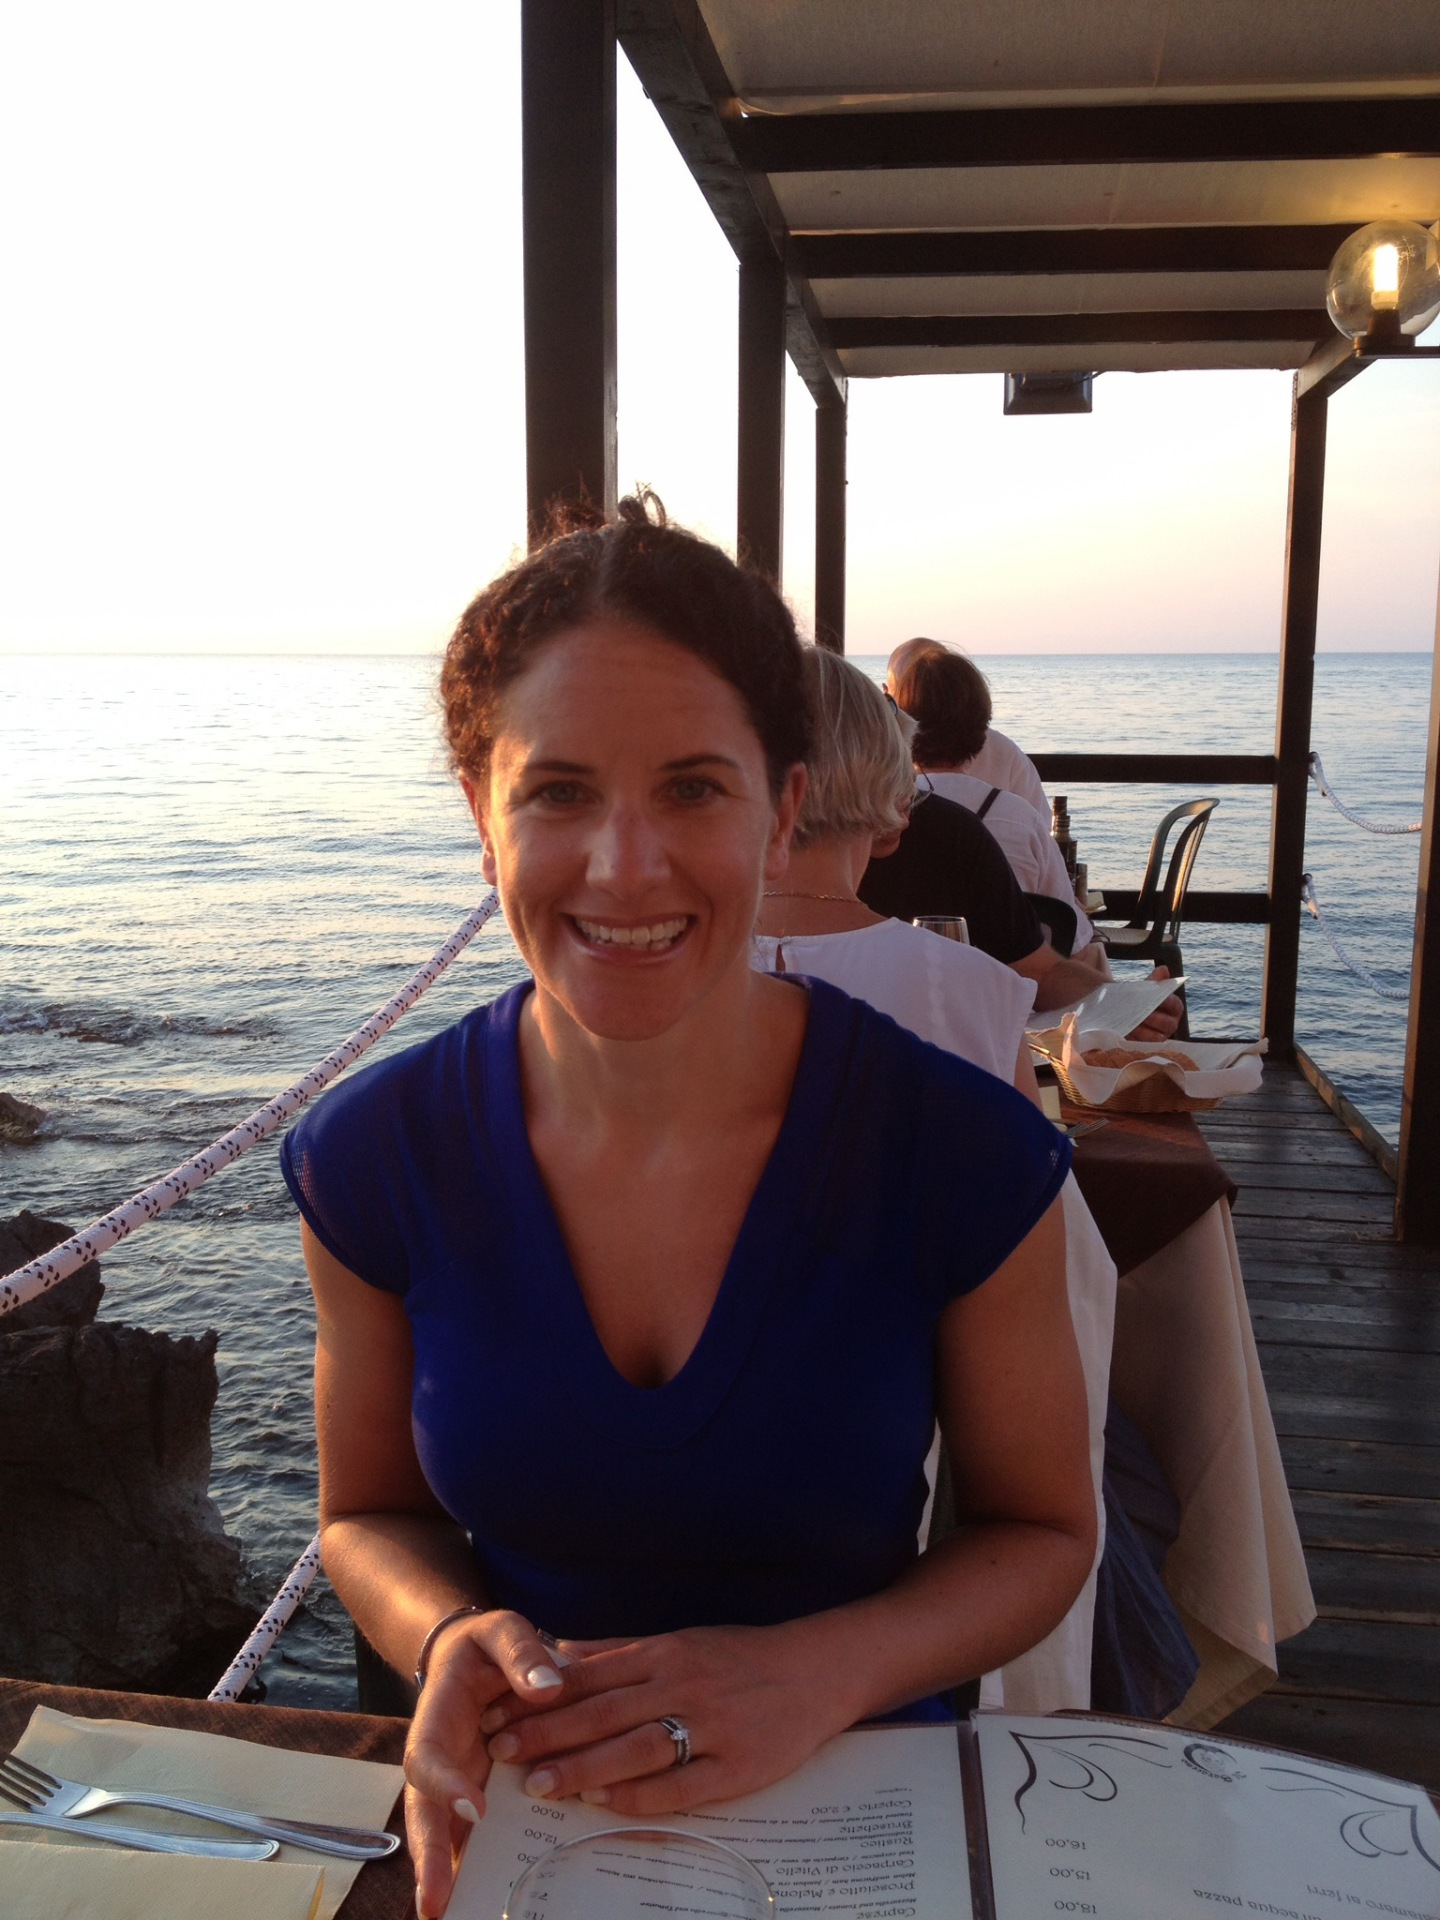 Dr Kirsty Gillings, Advanced Schema Therapist and Supervisor